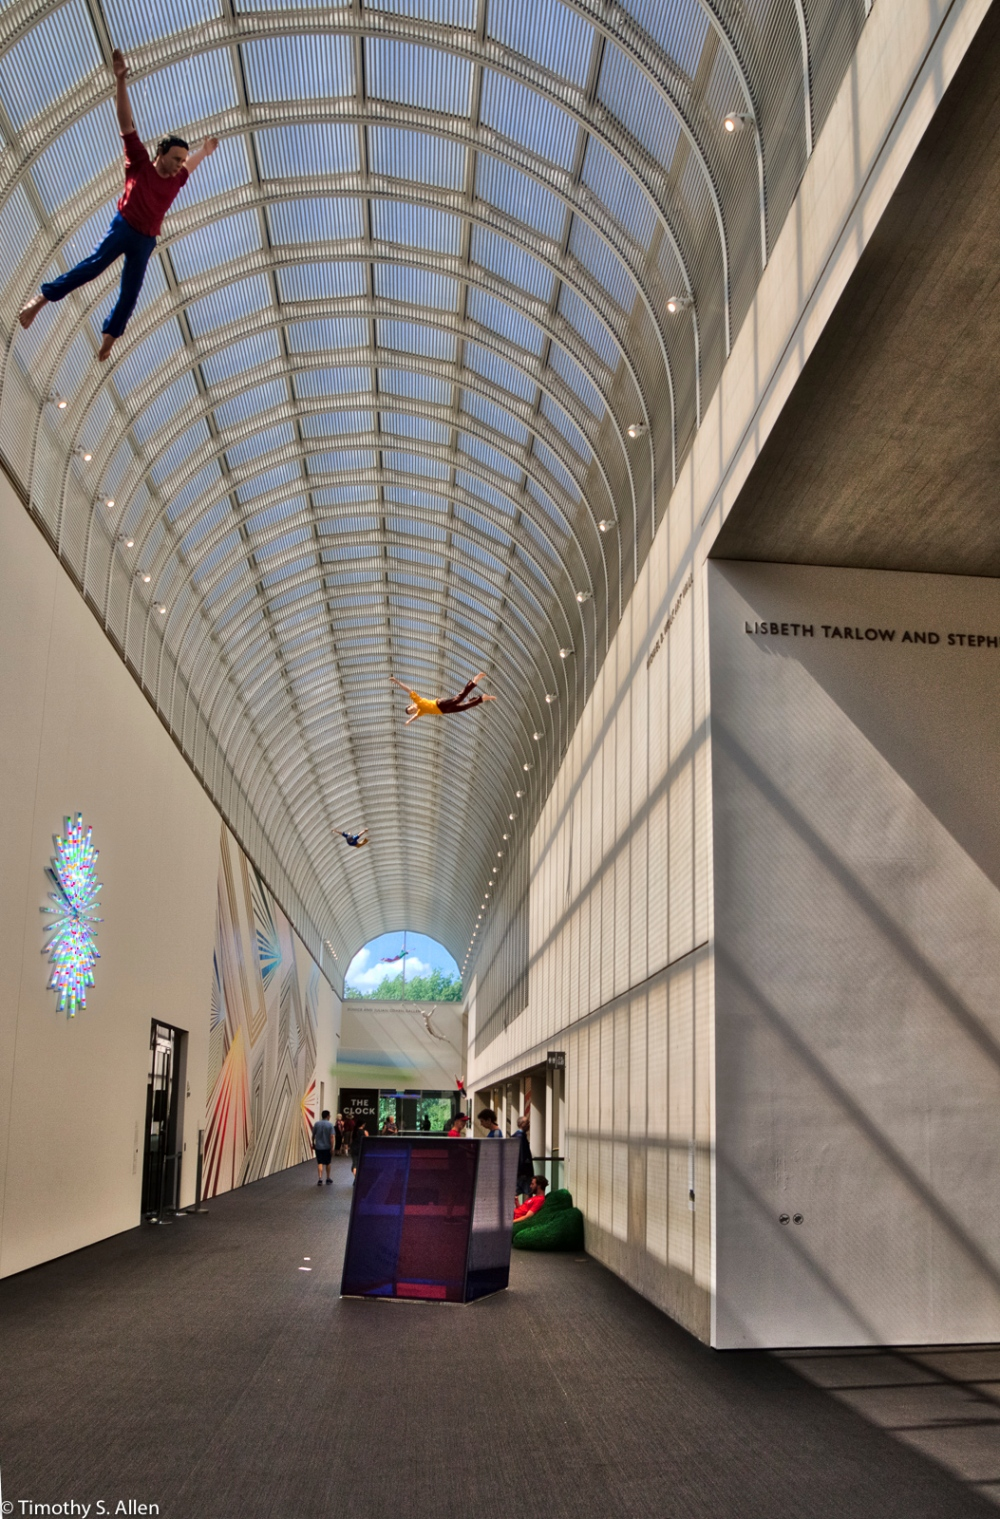 Museum of Fine Arts, Contemporary Wing, HDR, Boston, MA, U.S.A. August 14, 2016